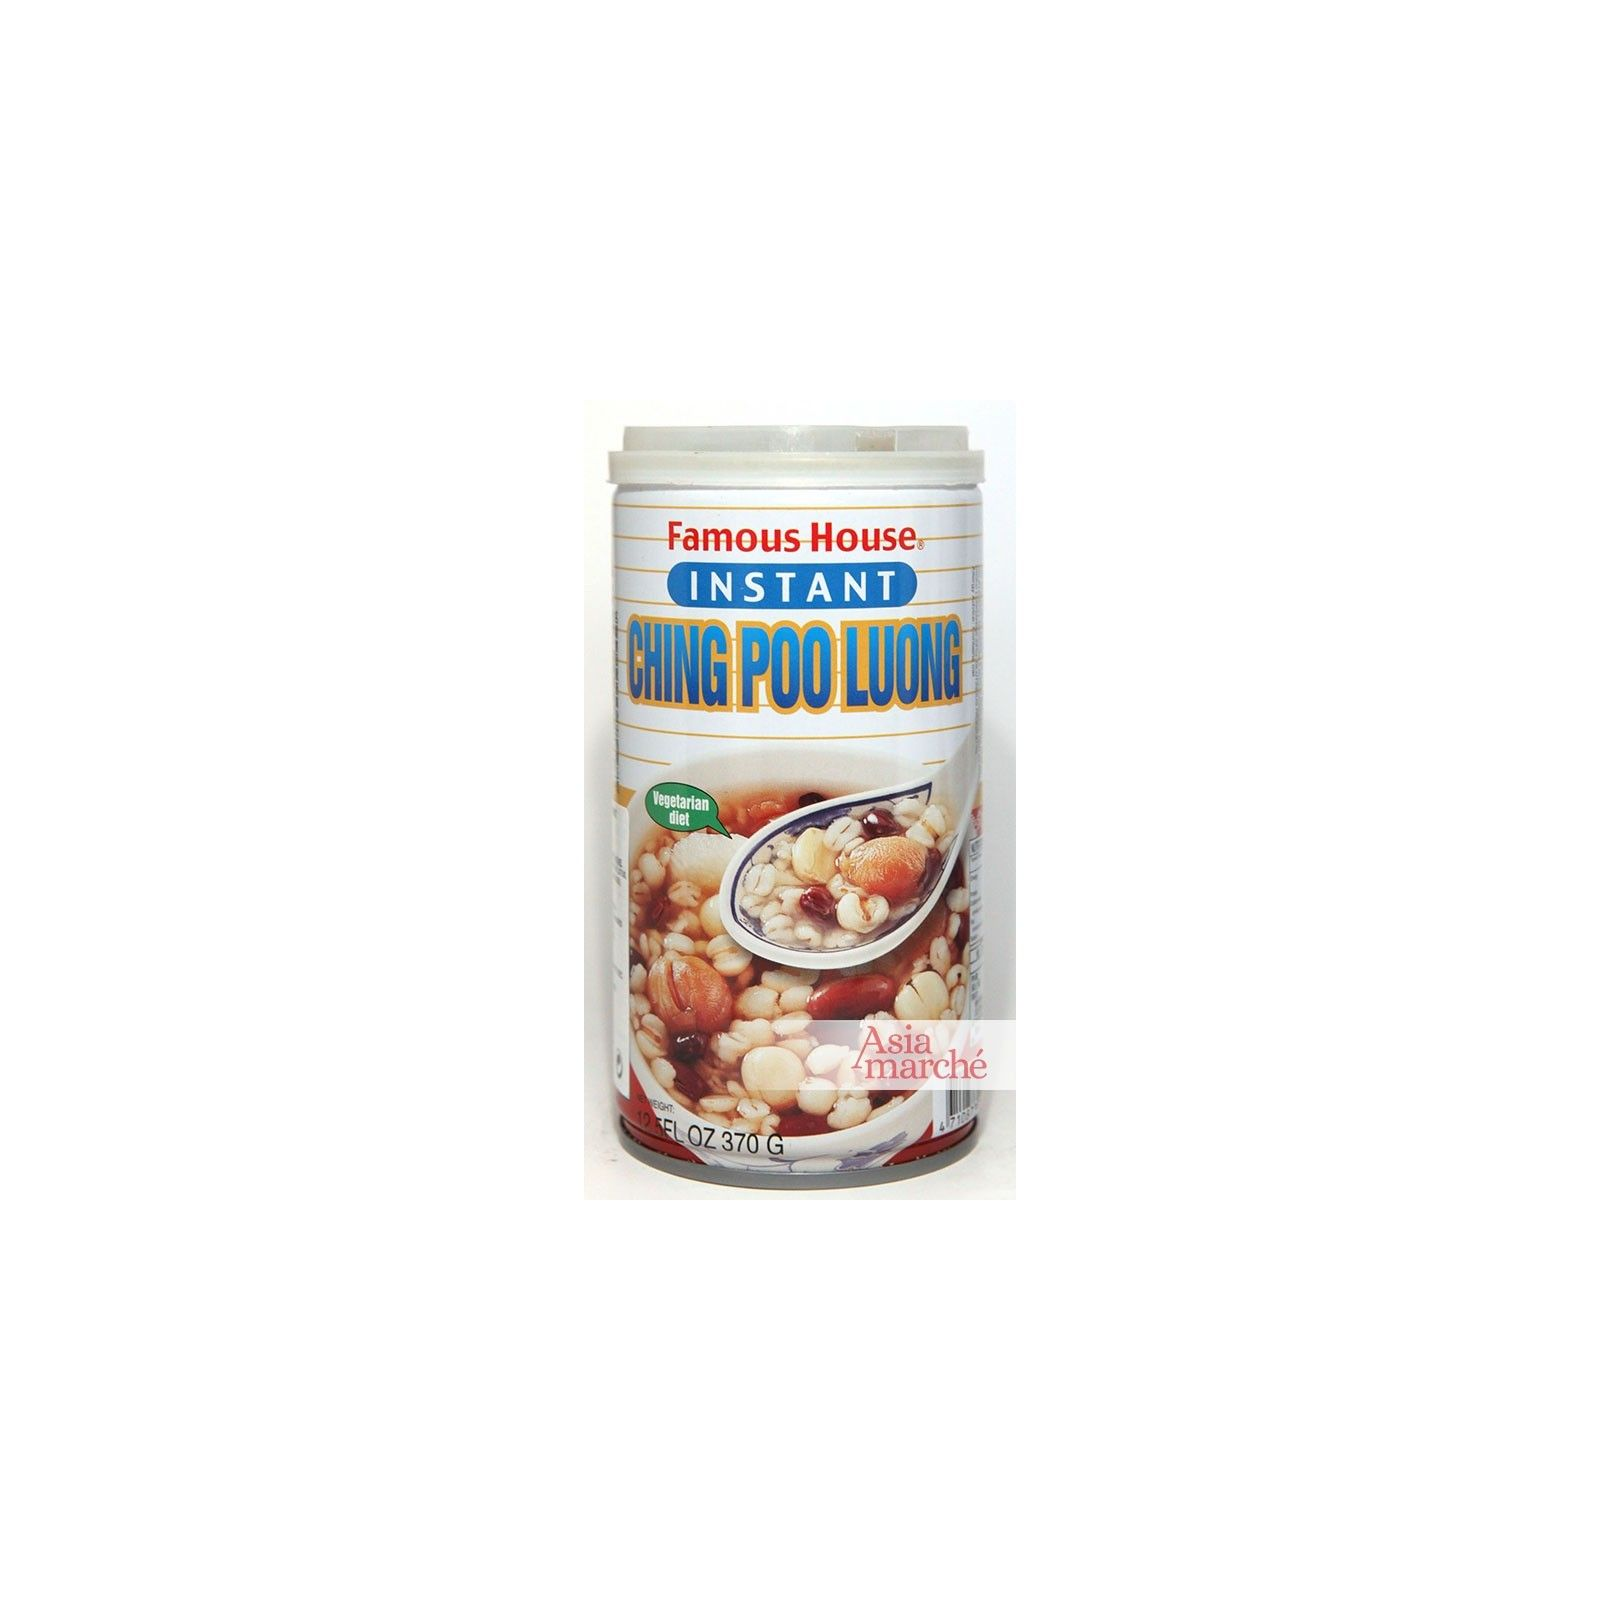 famous house ching poo luong 144541